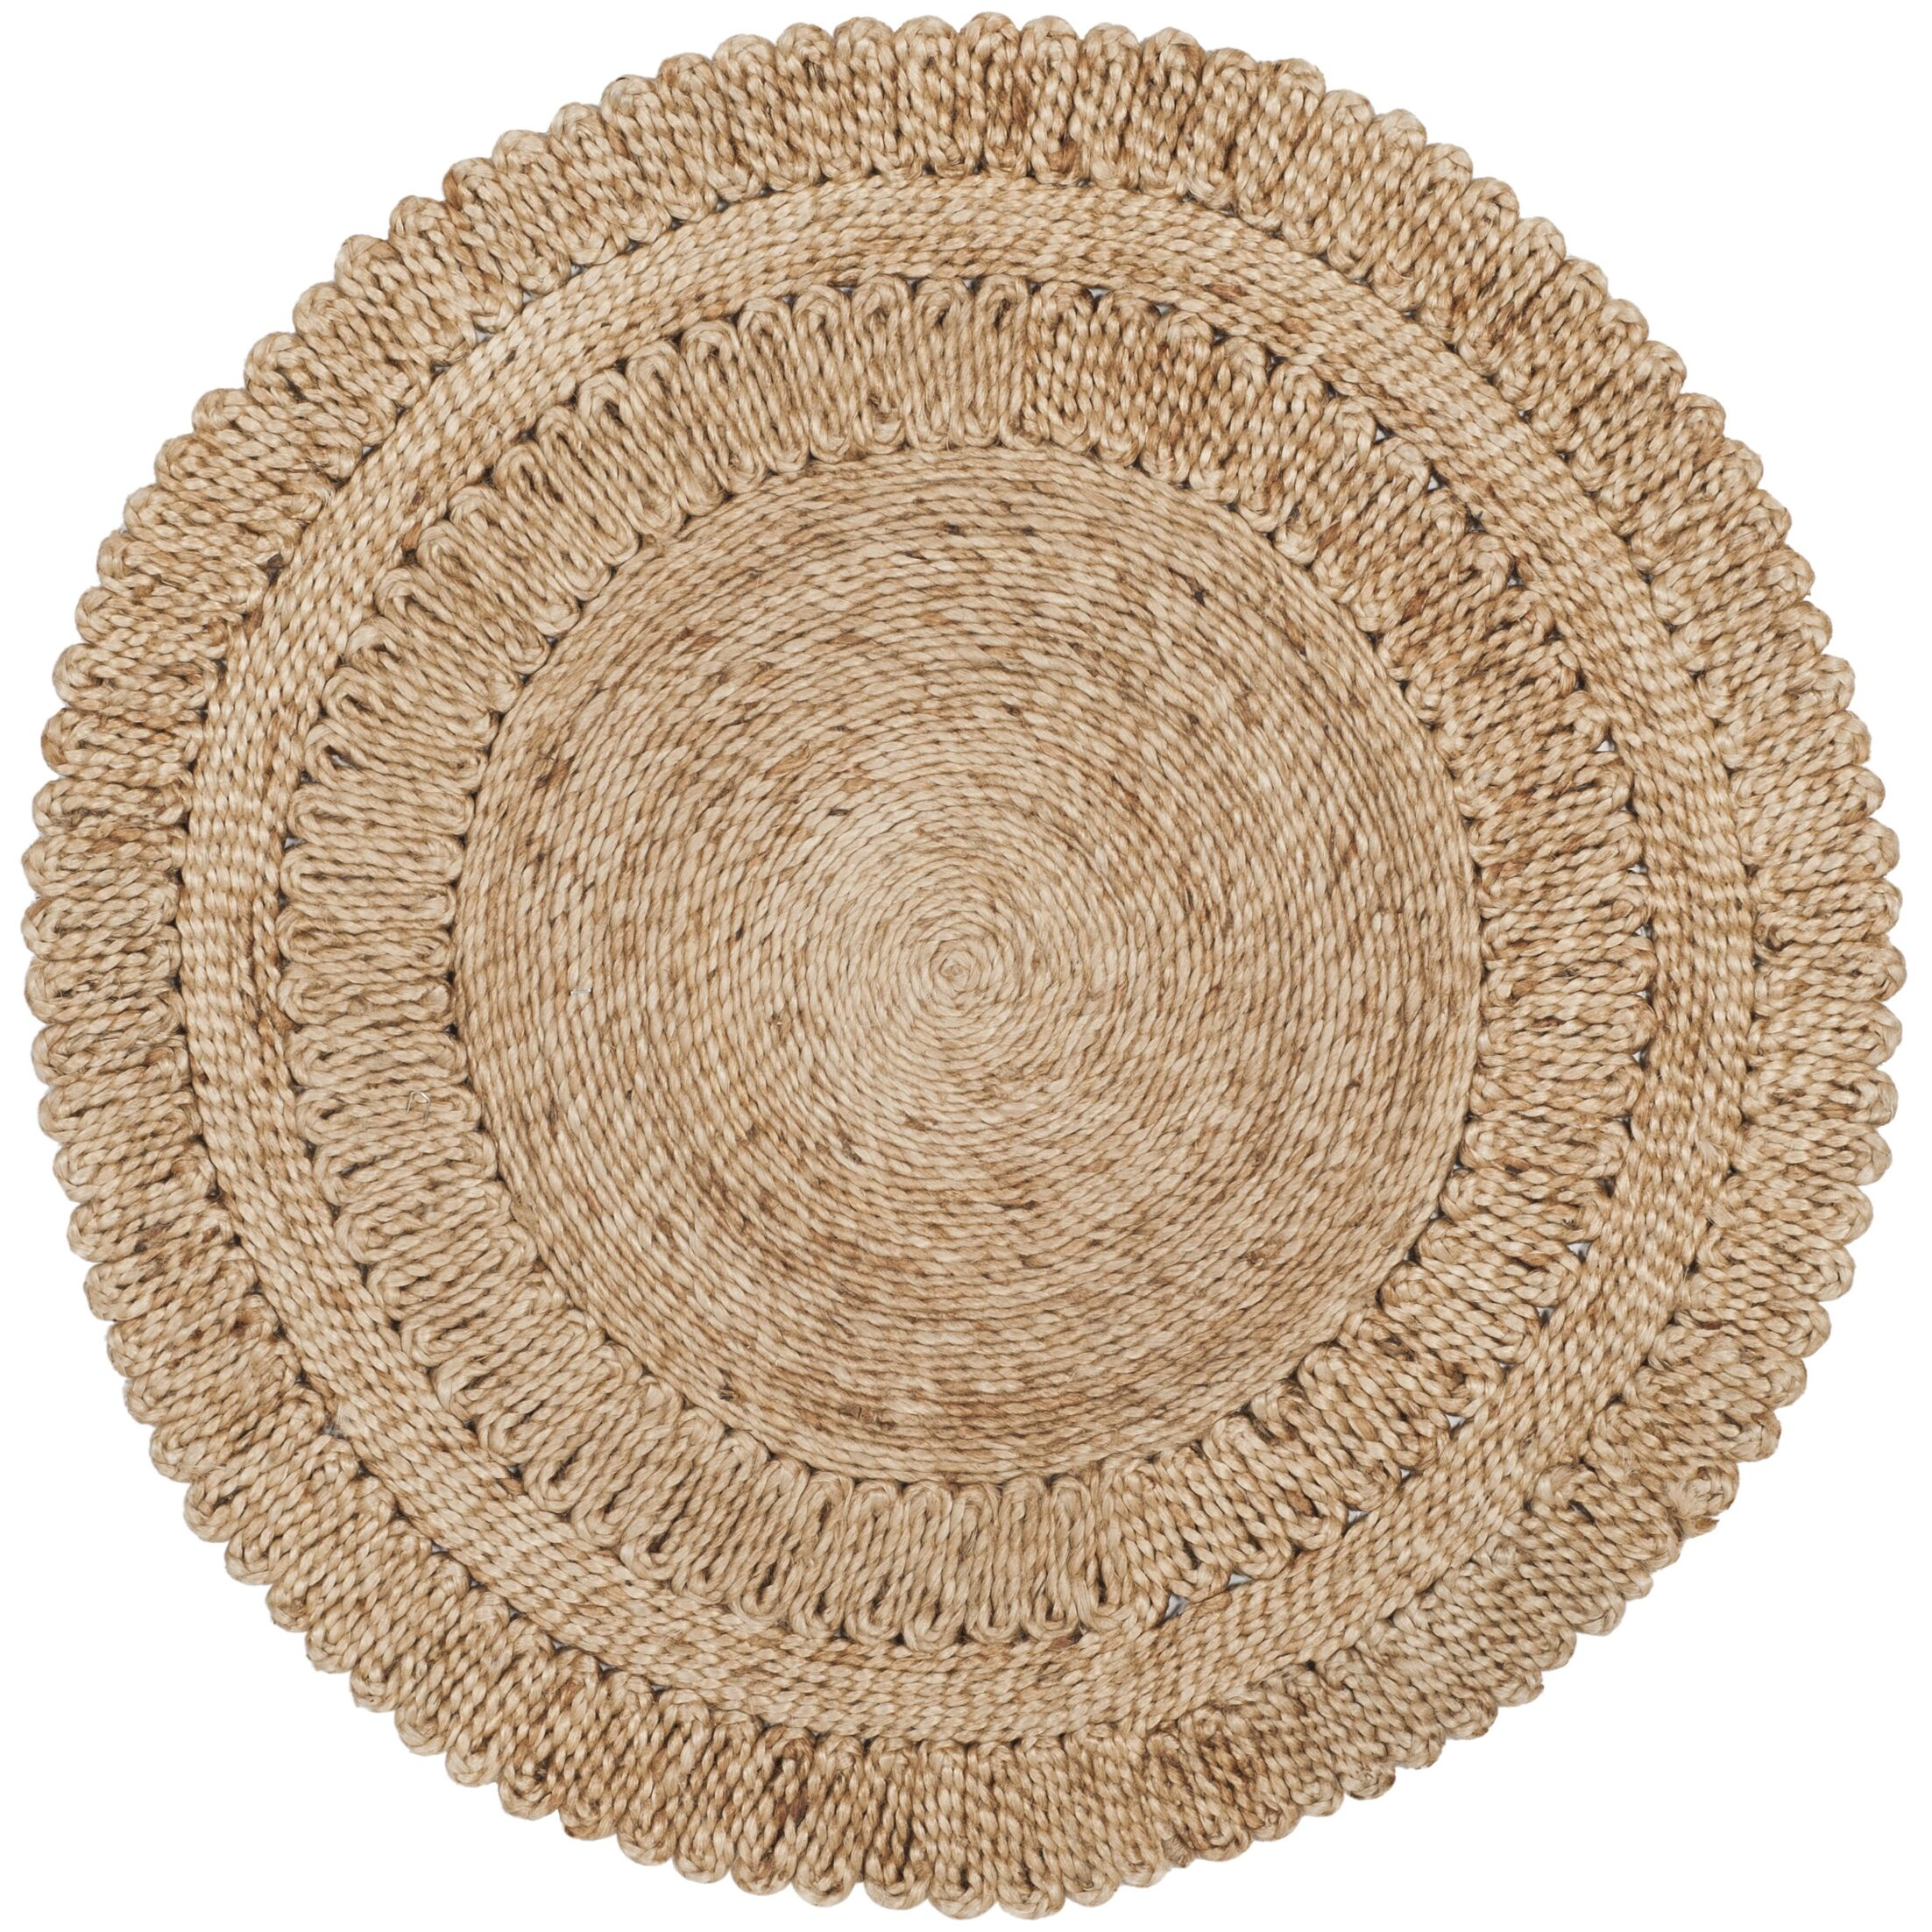 Bluebell Fiber Hand-Woven Natural Area Rug Rug Size: Round 4'